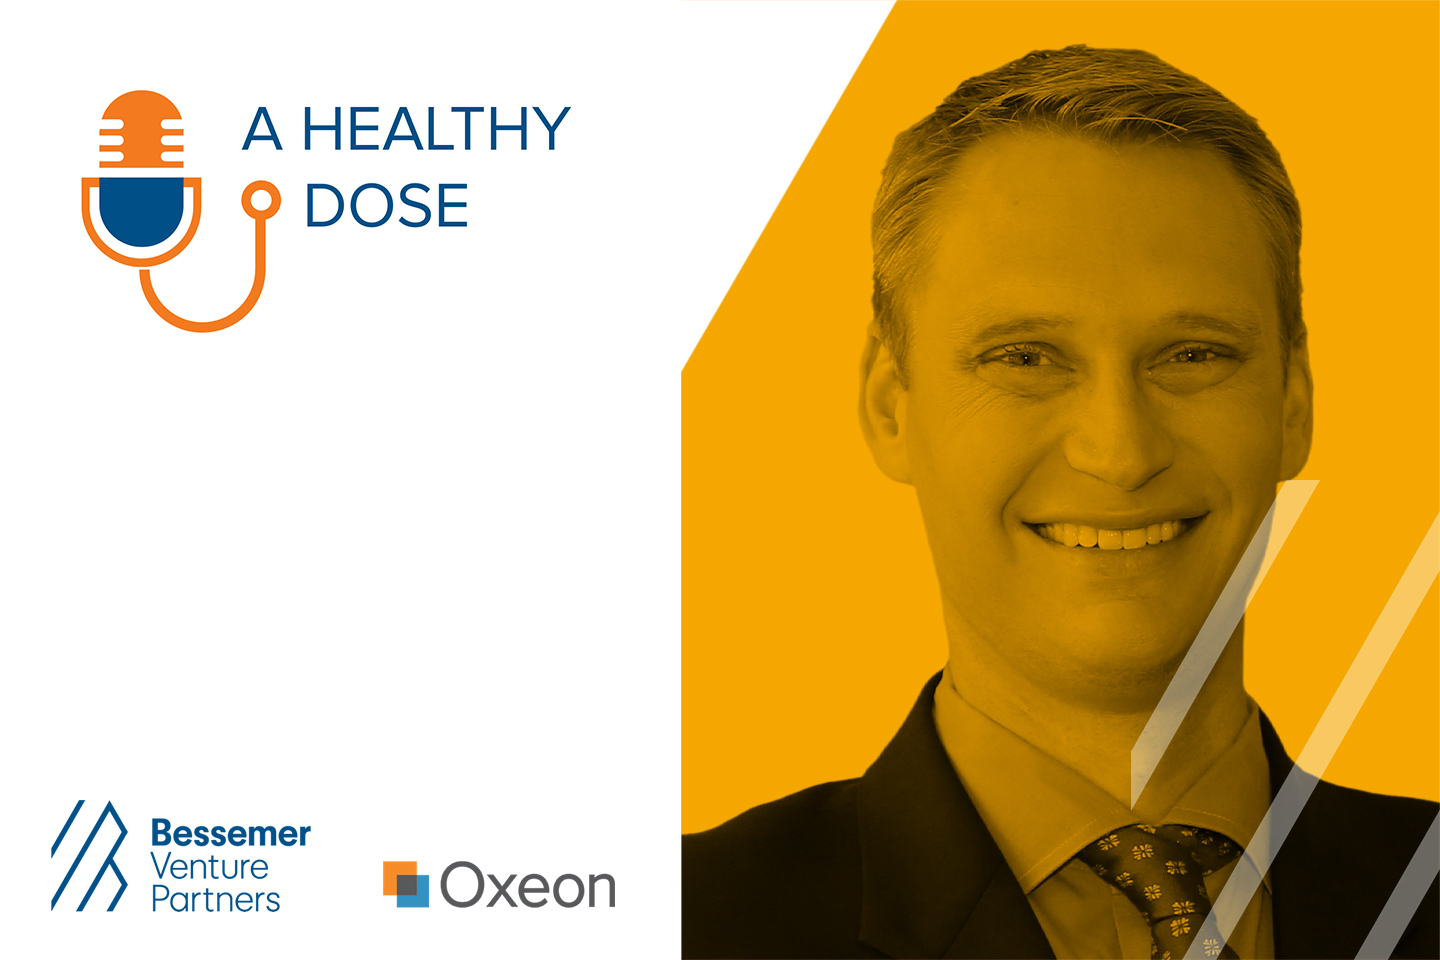 Illustrative Image of Logos showing A Healthy Dose, Bessemer Venture Partners Oxeon and Photo of Male Speaker